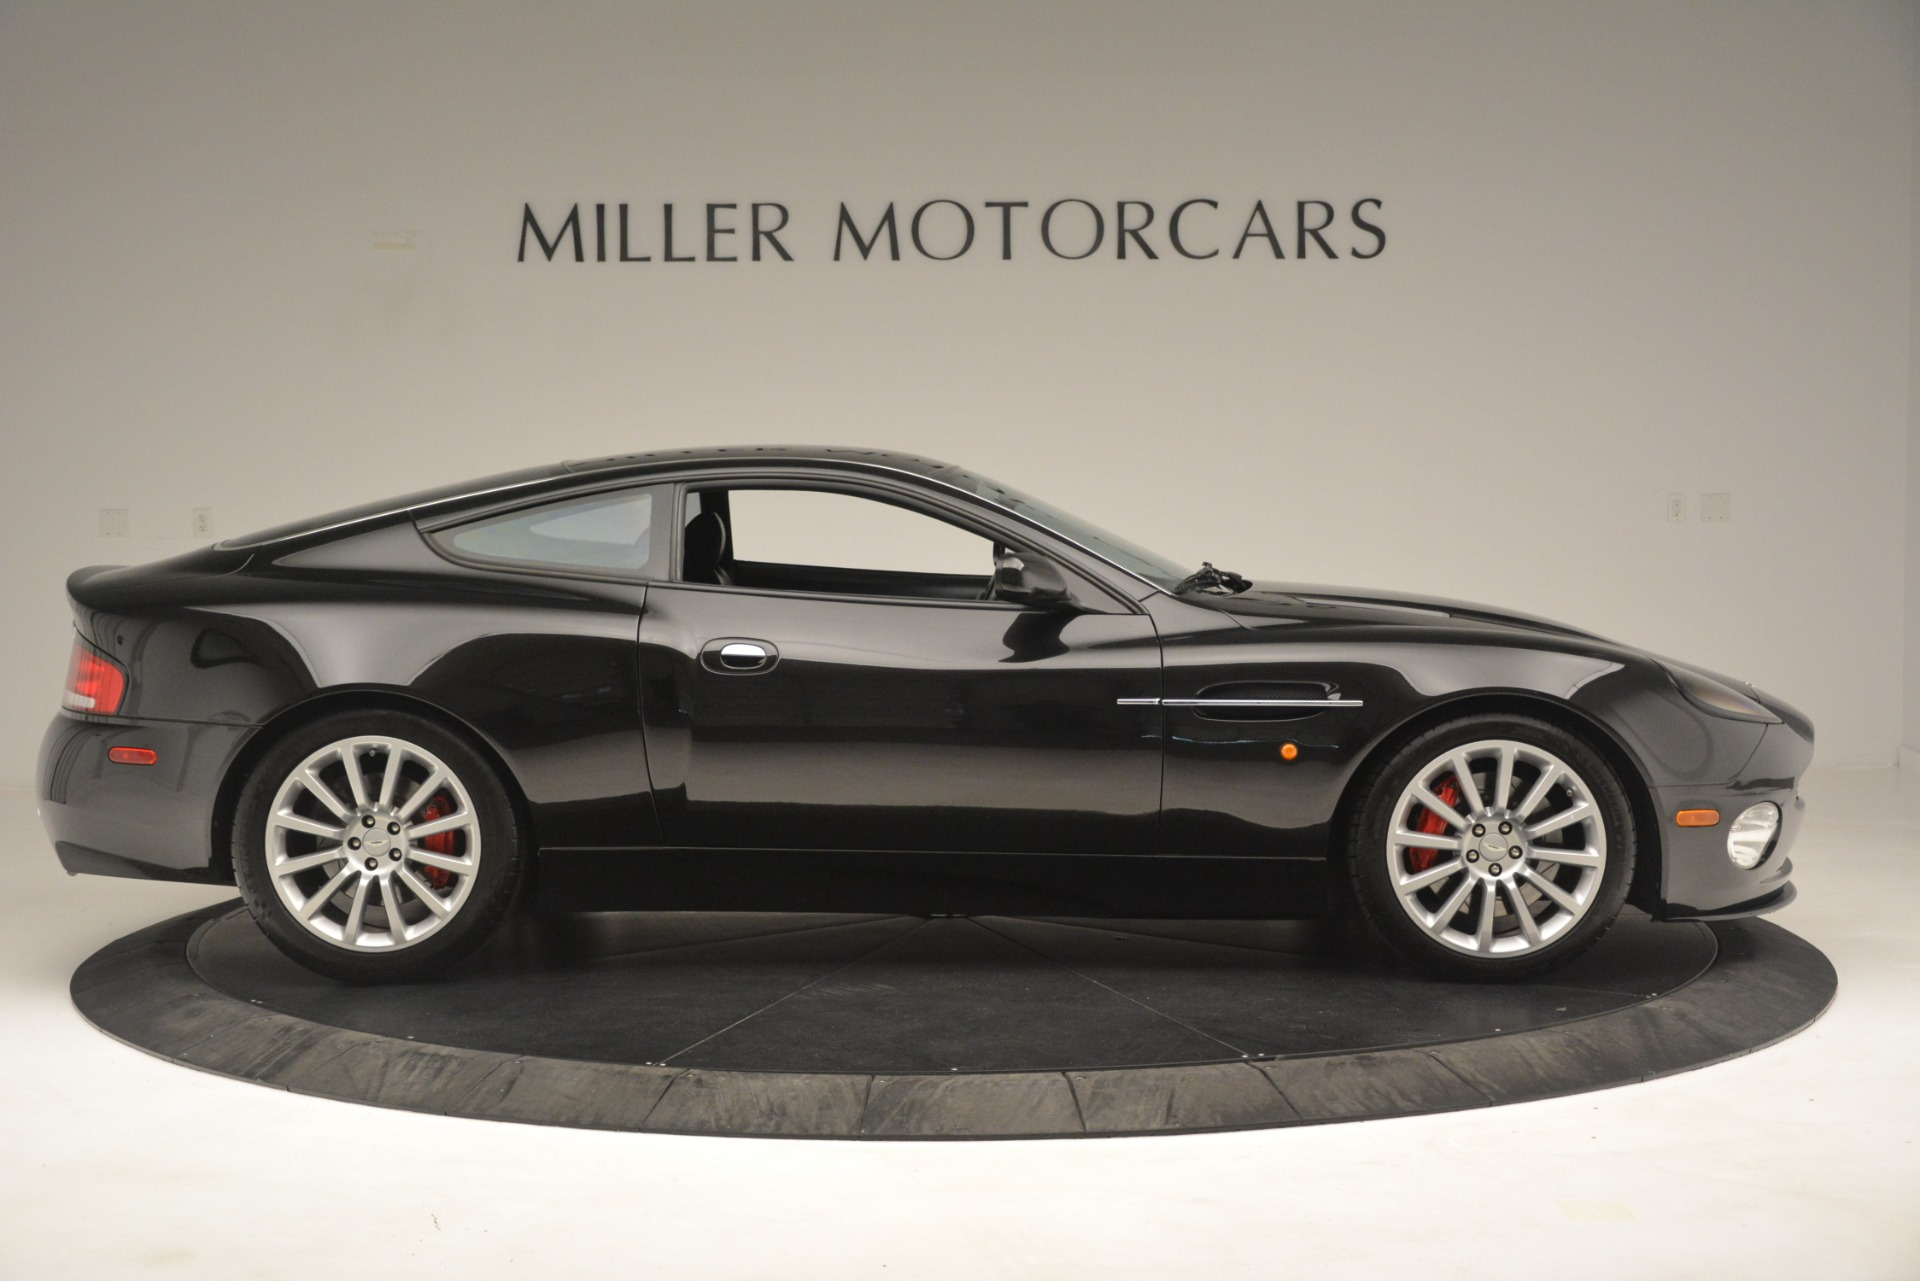 Used 2004 Aston Martin V12 Vanquish  For Sale In Westport, CT 3160_p7